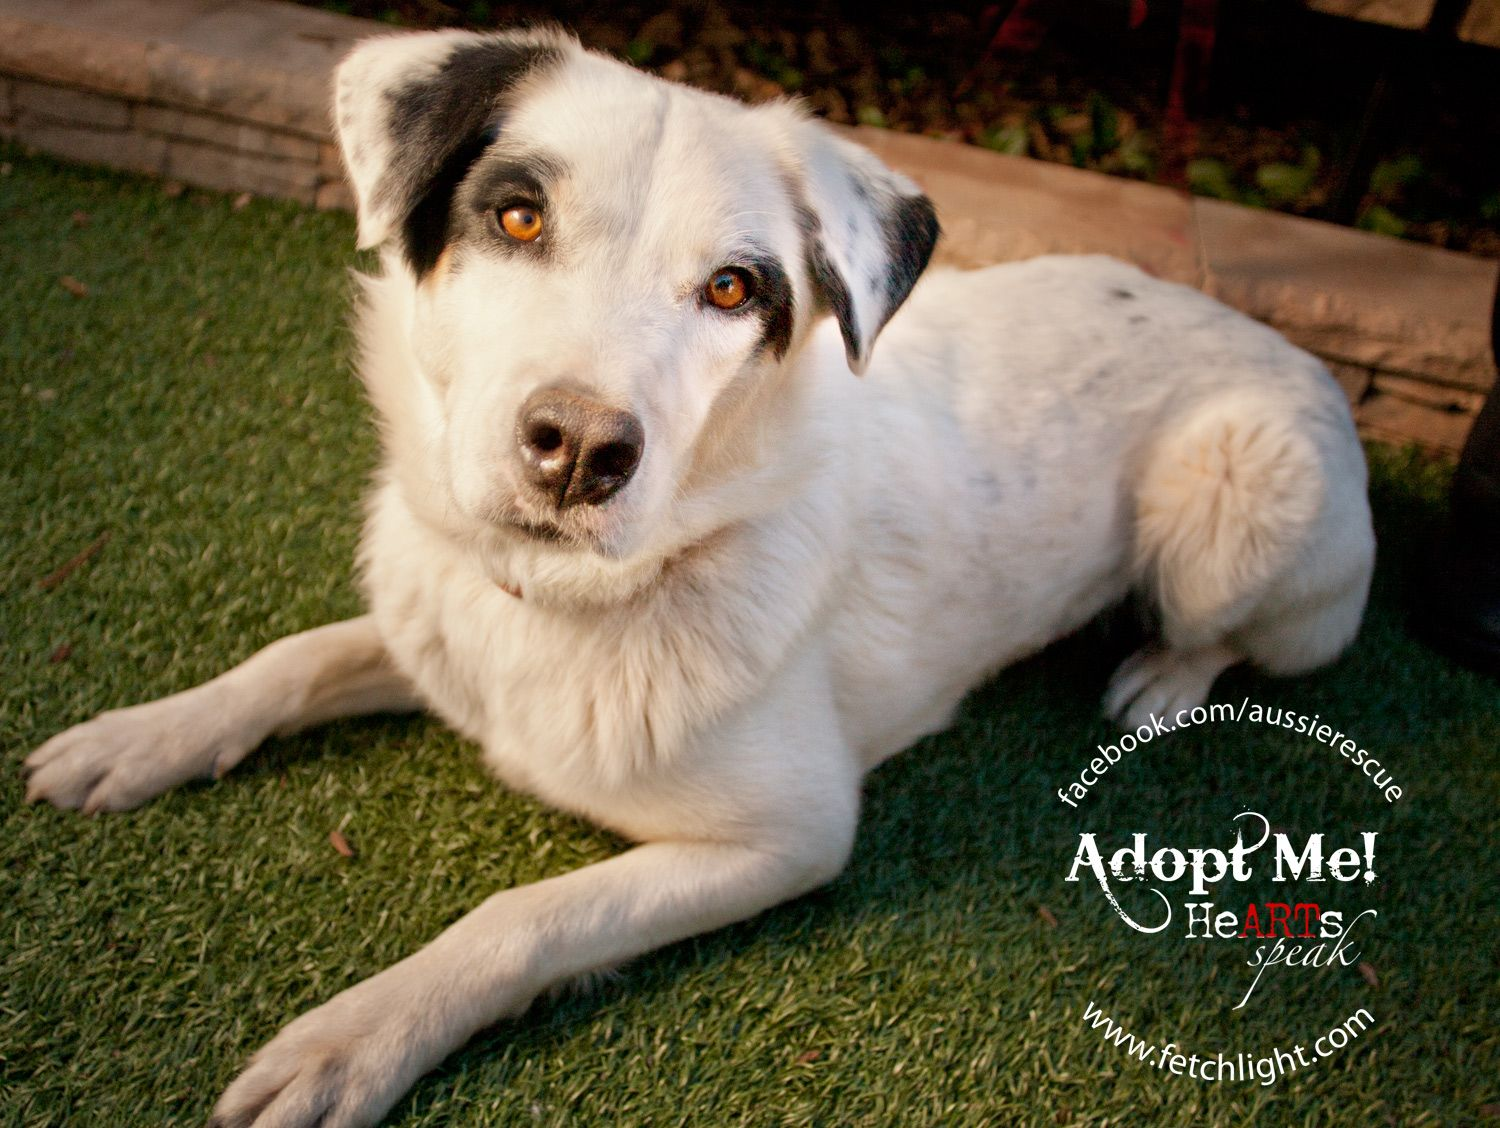 Bandit is available to adopt from Aussie Rescue San Diego